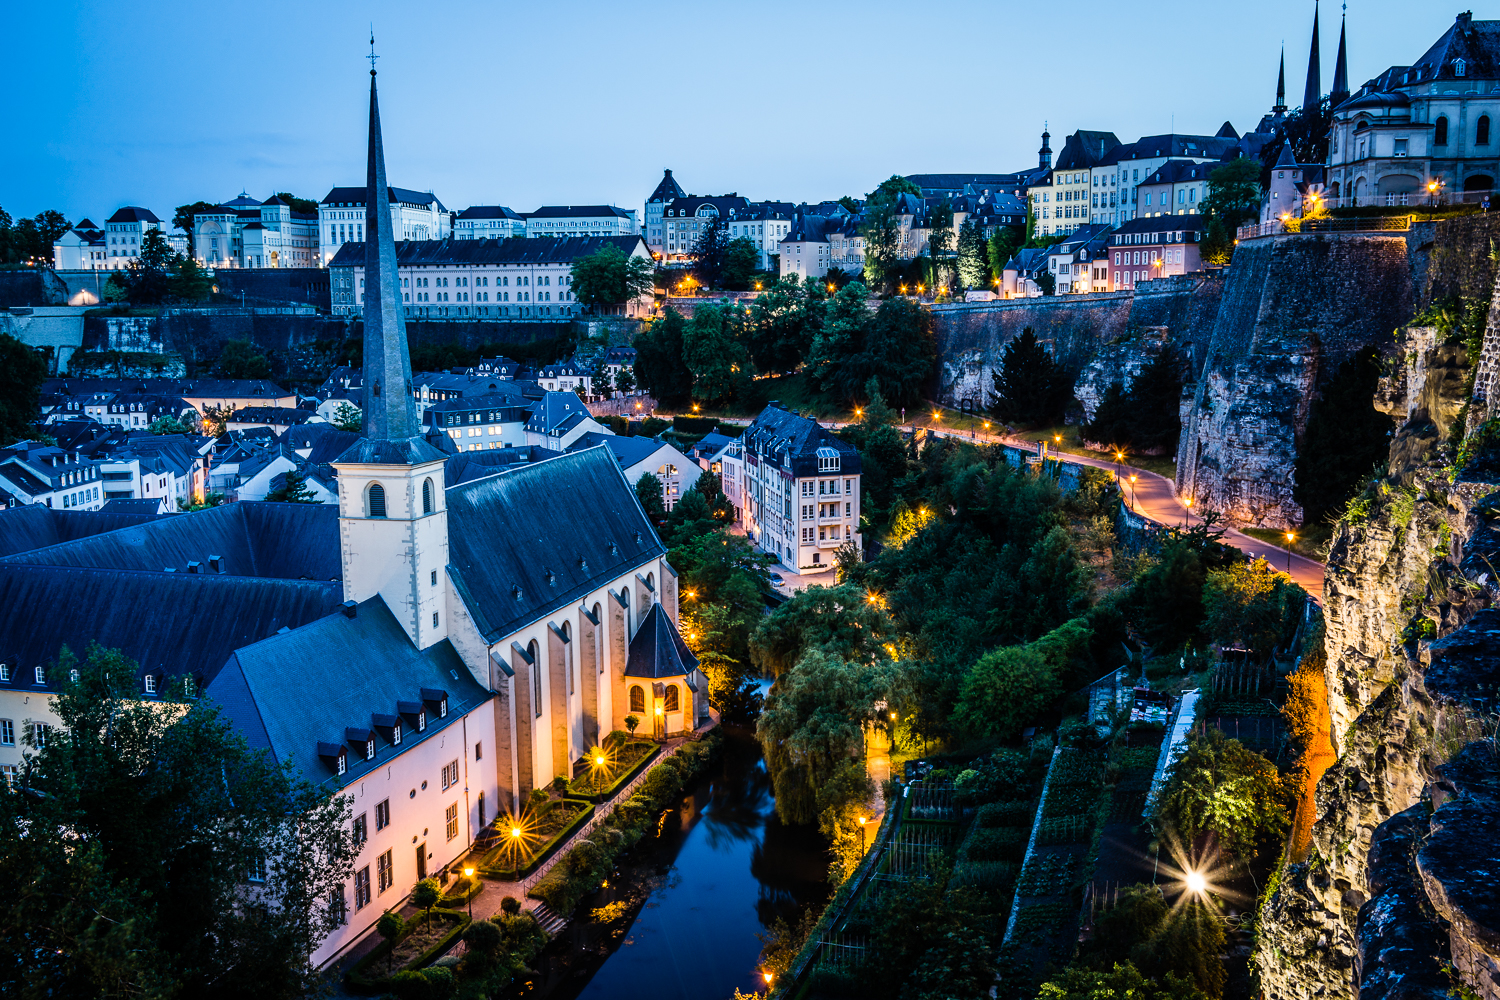 20140611 Luxembourg by night - RX1R - 01570.jpg